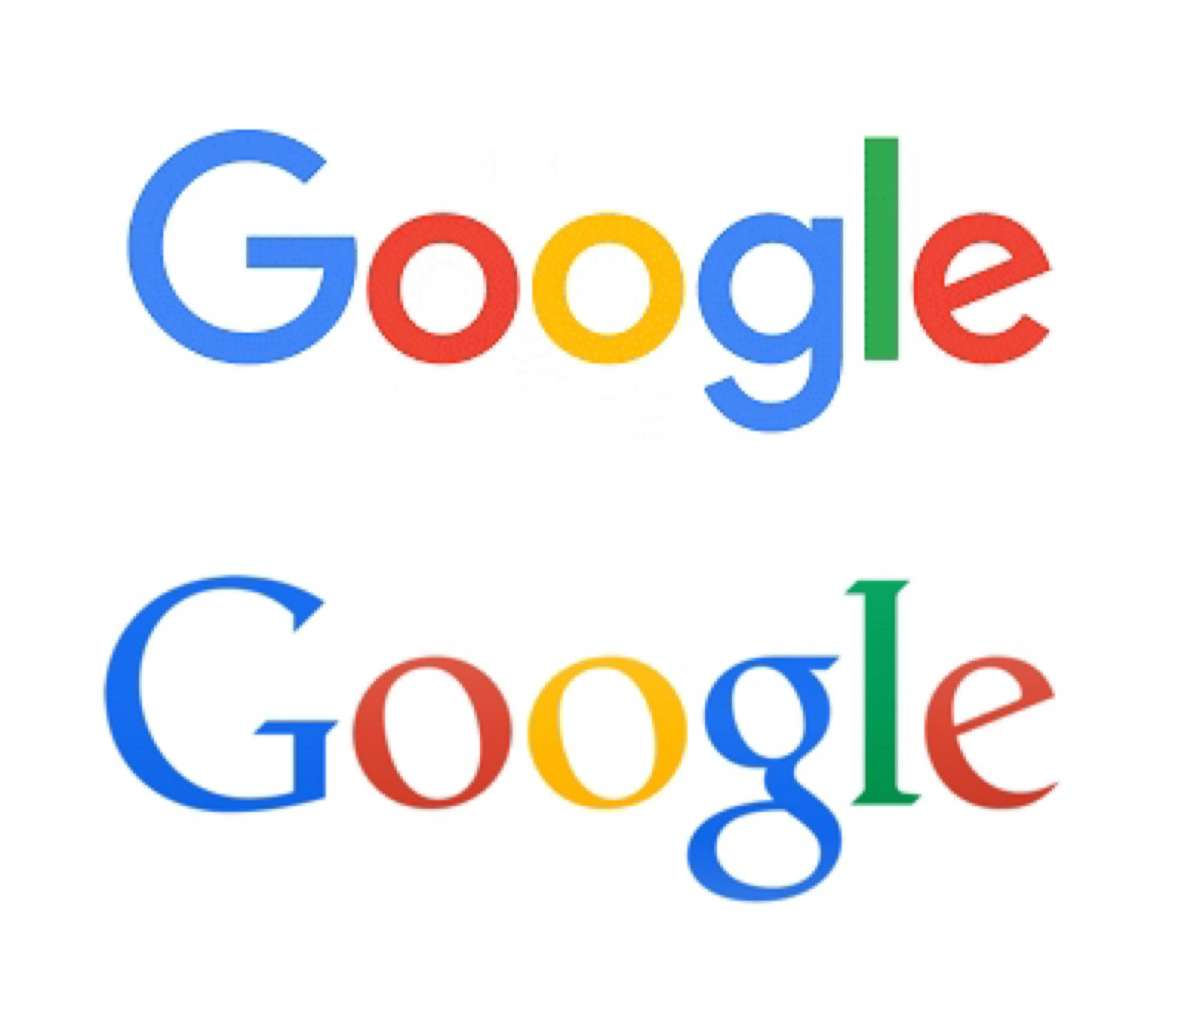 Old New Google Logo Comparison